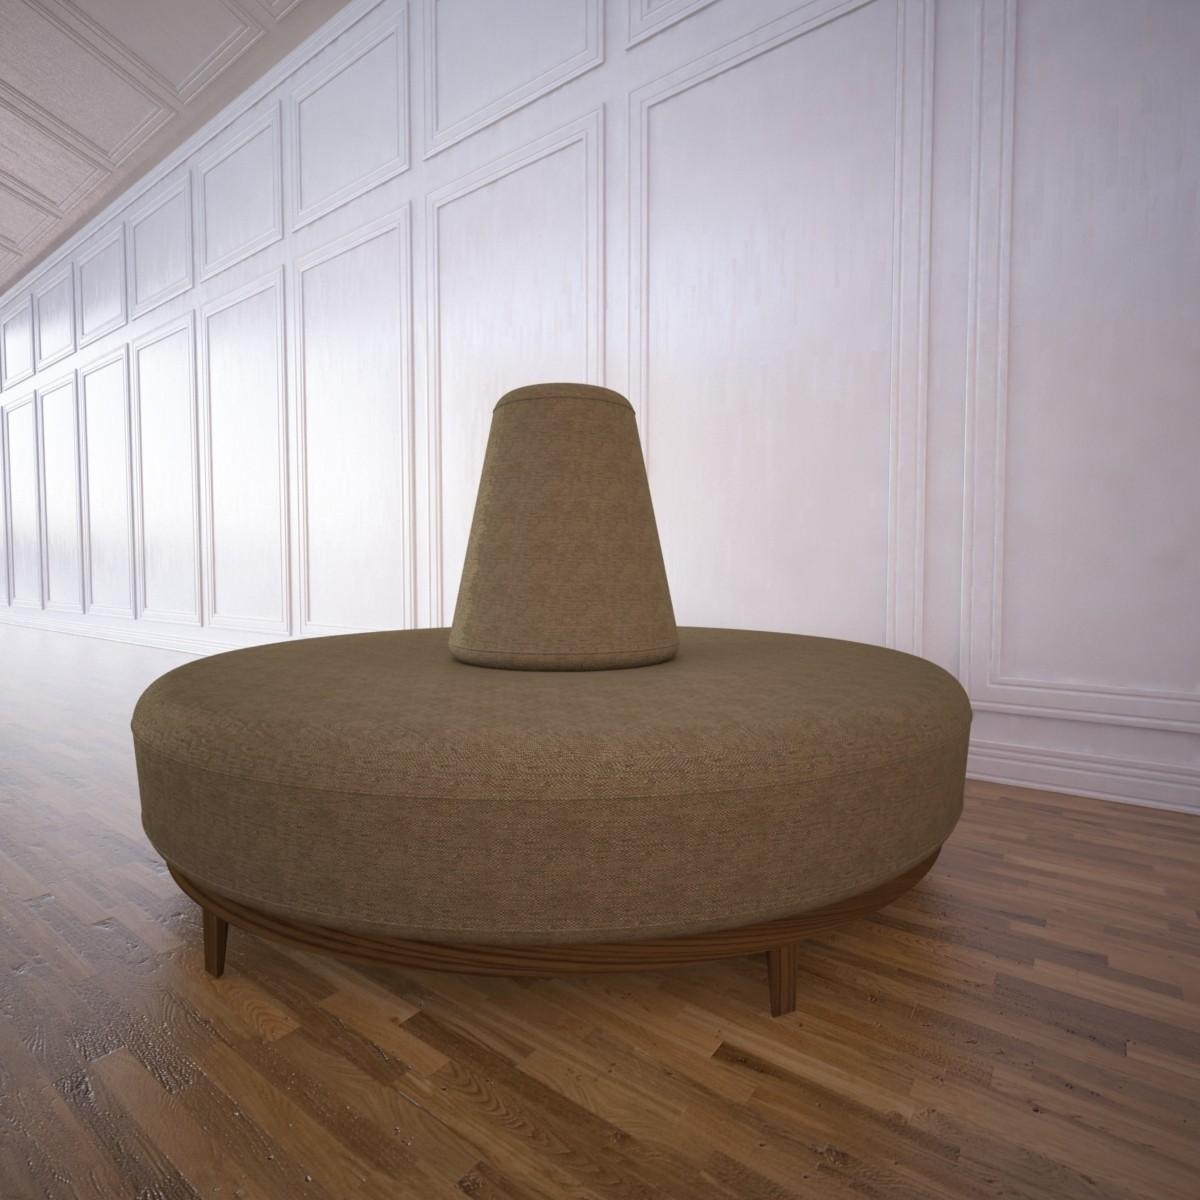 Circular Banquette Seating Photo – Banquette Design In Banquette Sofas (Image 16 of 20)